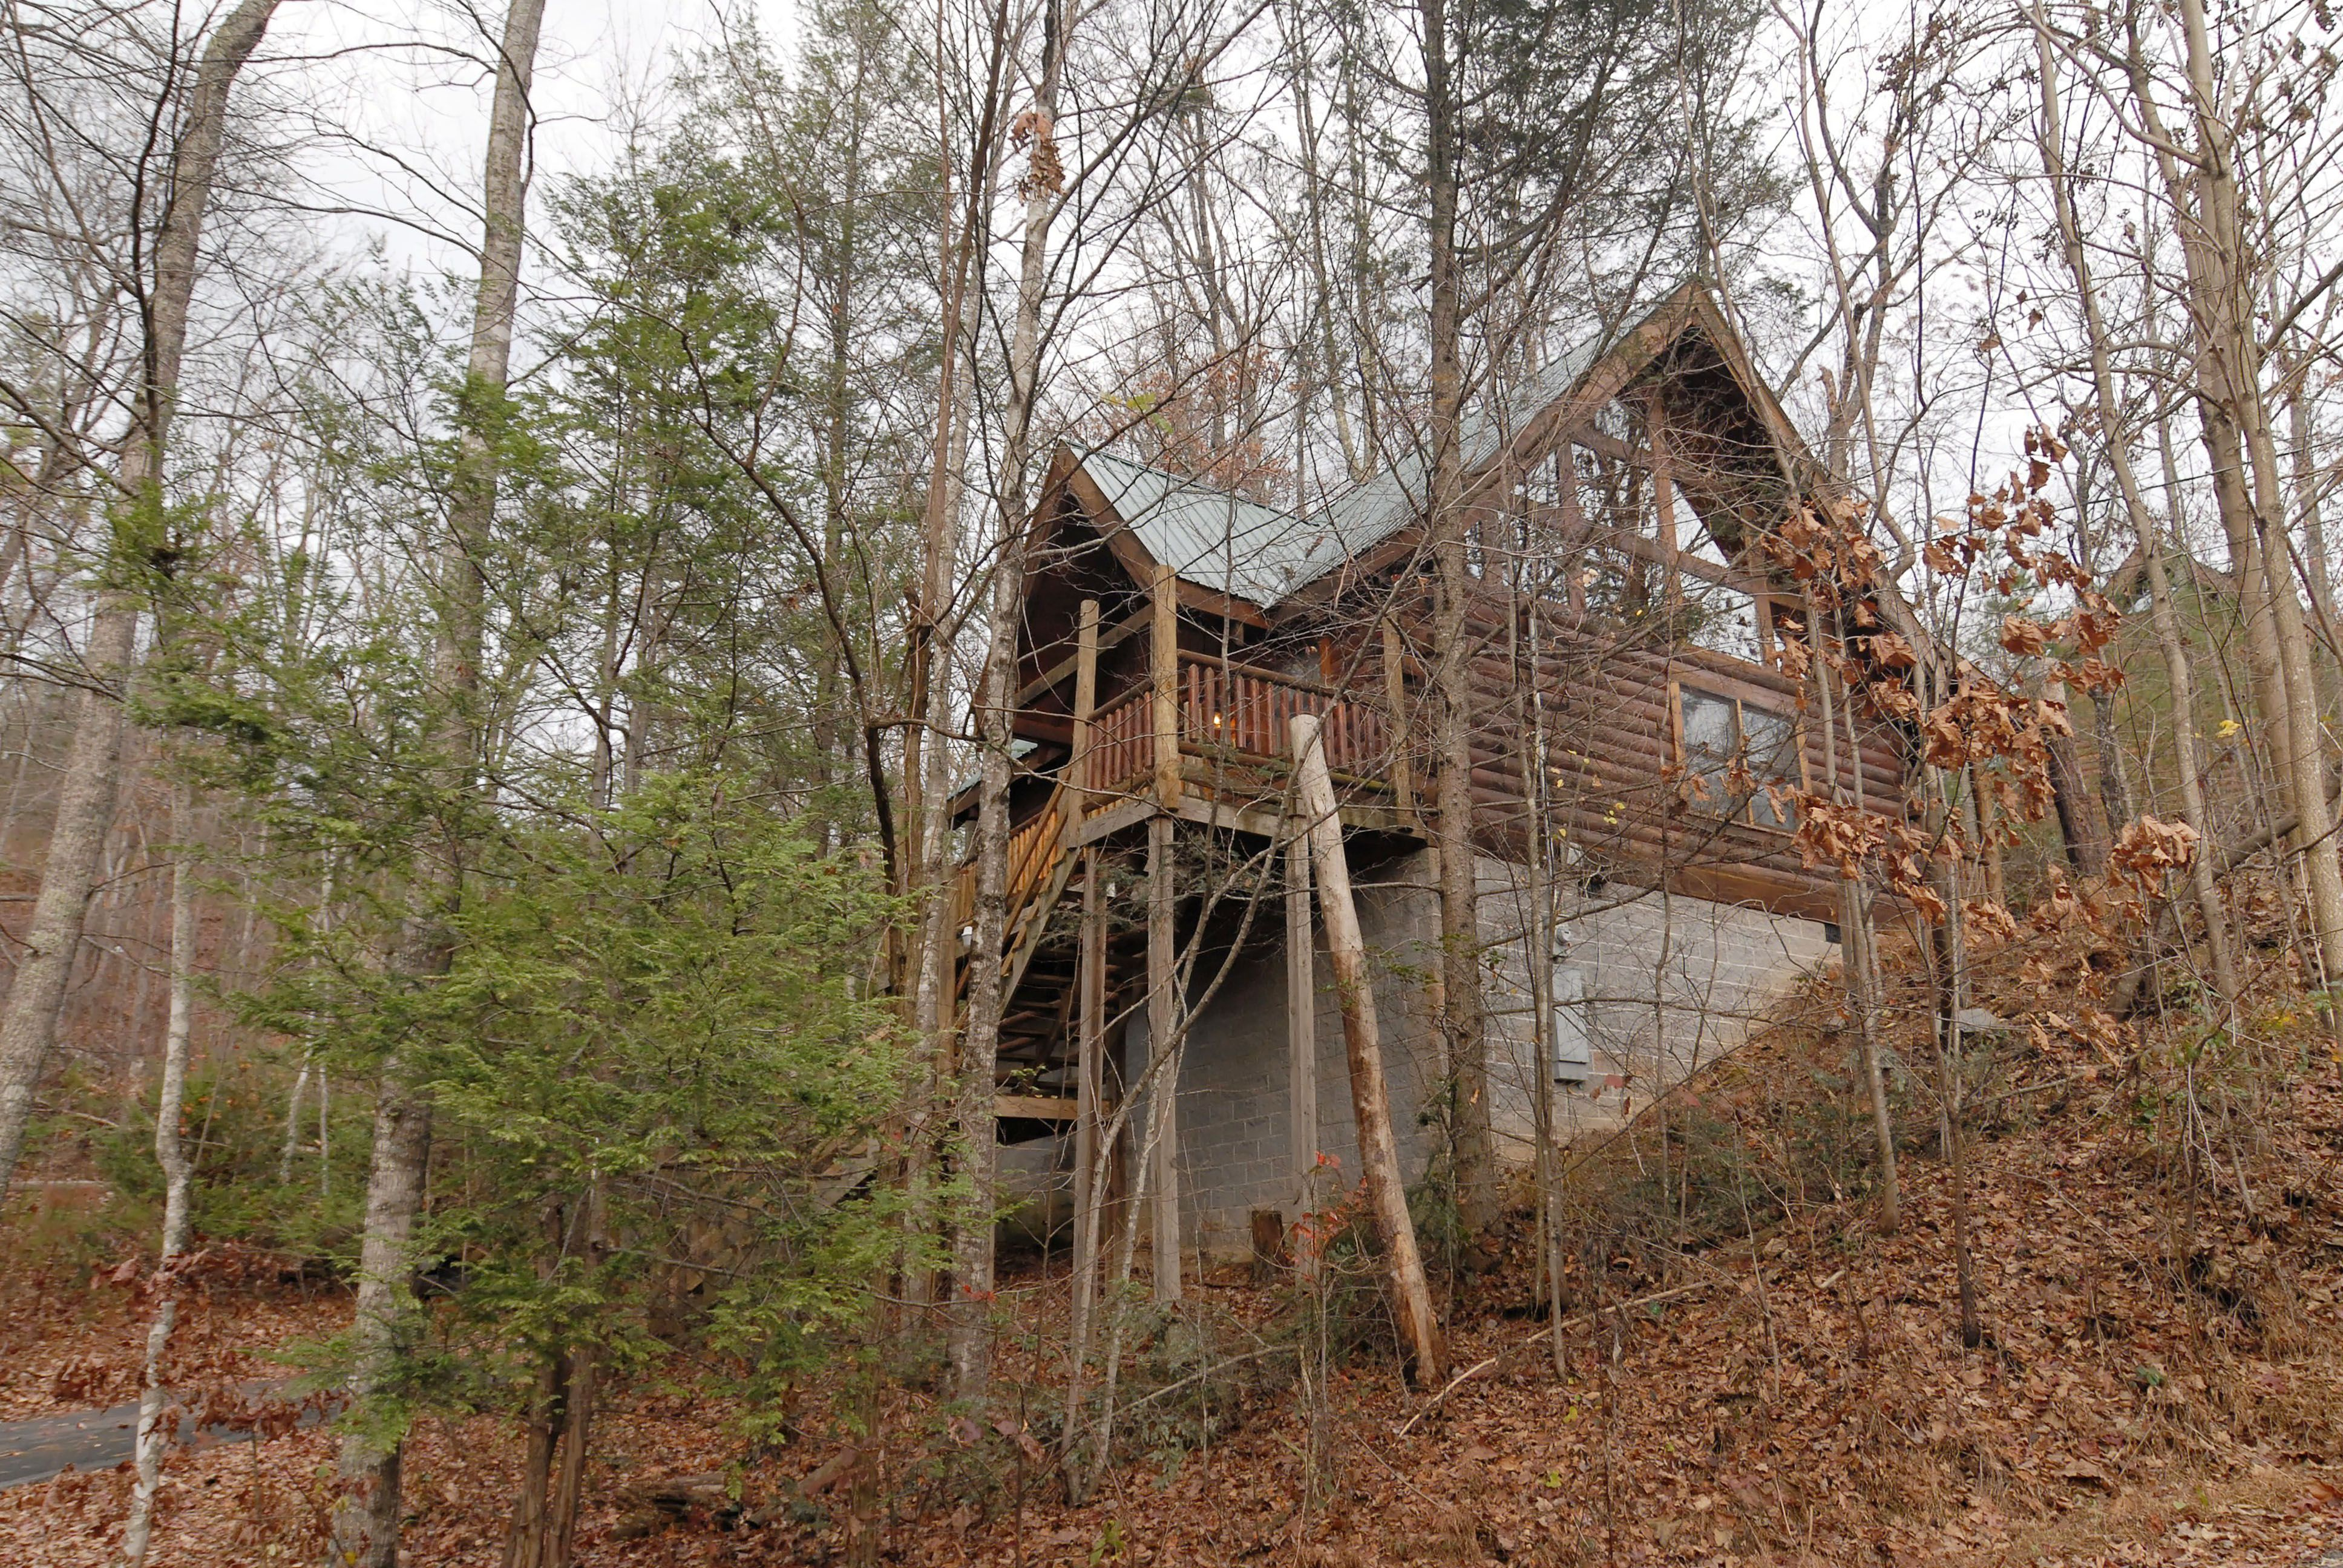 Petfriendly secluded cabin in the Smoky Mountains. 1